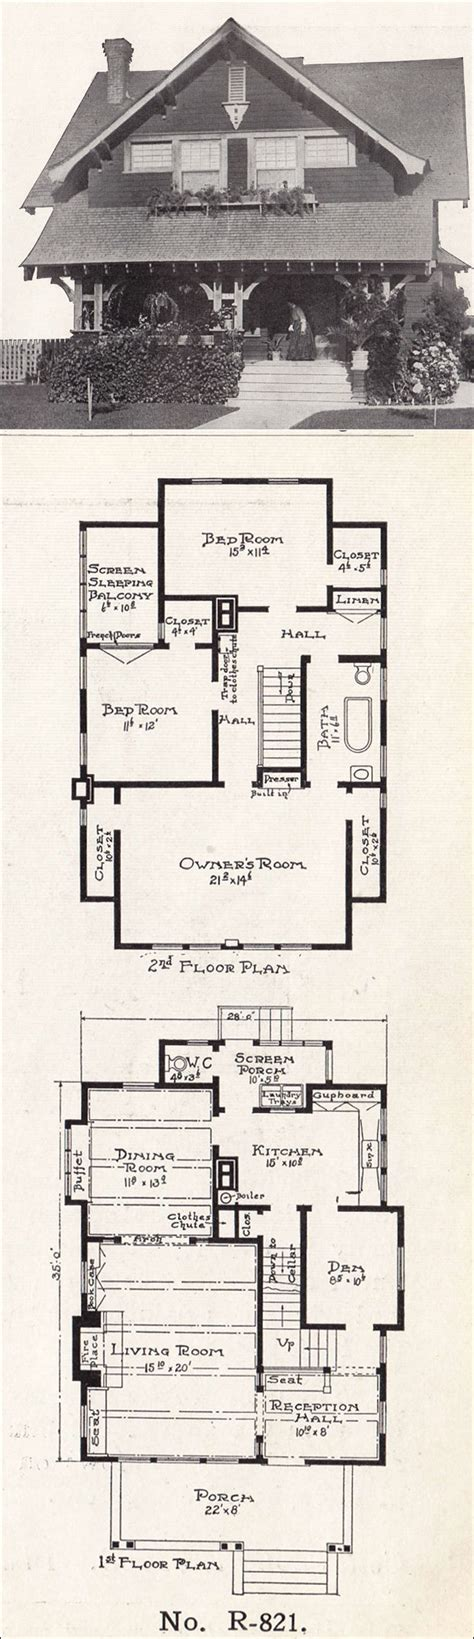 californian bungalow floor plans californian bungalow floor plan best 18stillwell r821